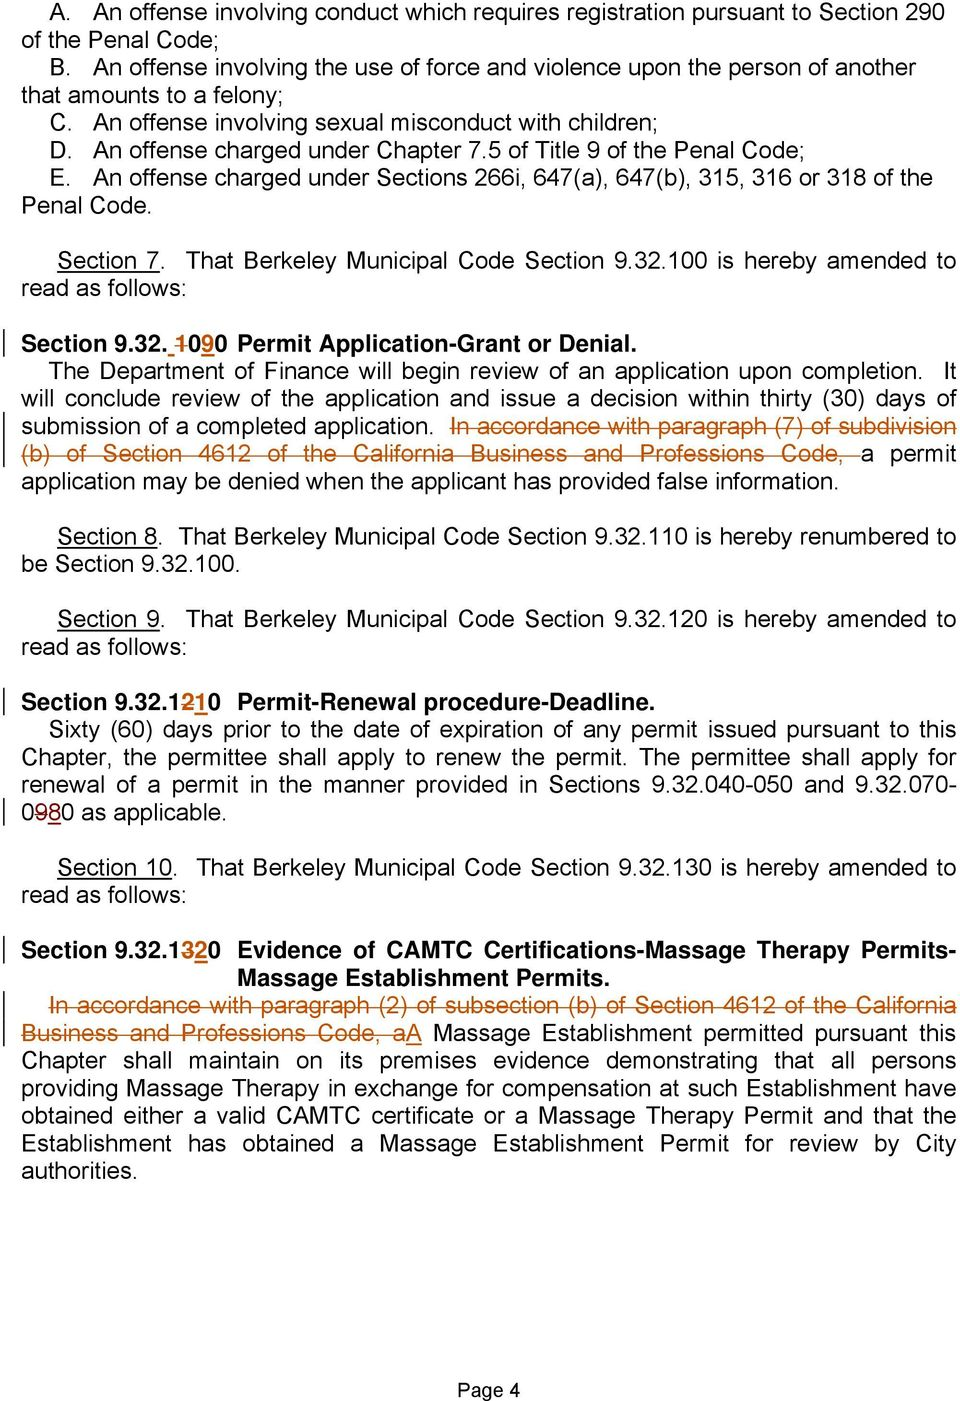 5 of Title 9 of the Penal Code; E. An offense charged under Sections 266i, 647(a), 647(b), 315, 316 or 318 of the Penal Code. Section 7. That Berkeley Municipal Code Section 9.32.